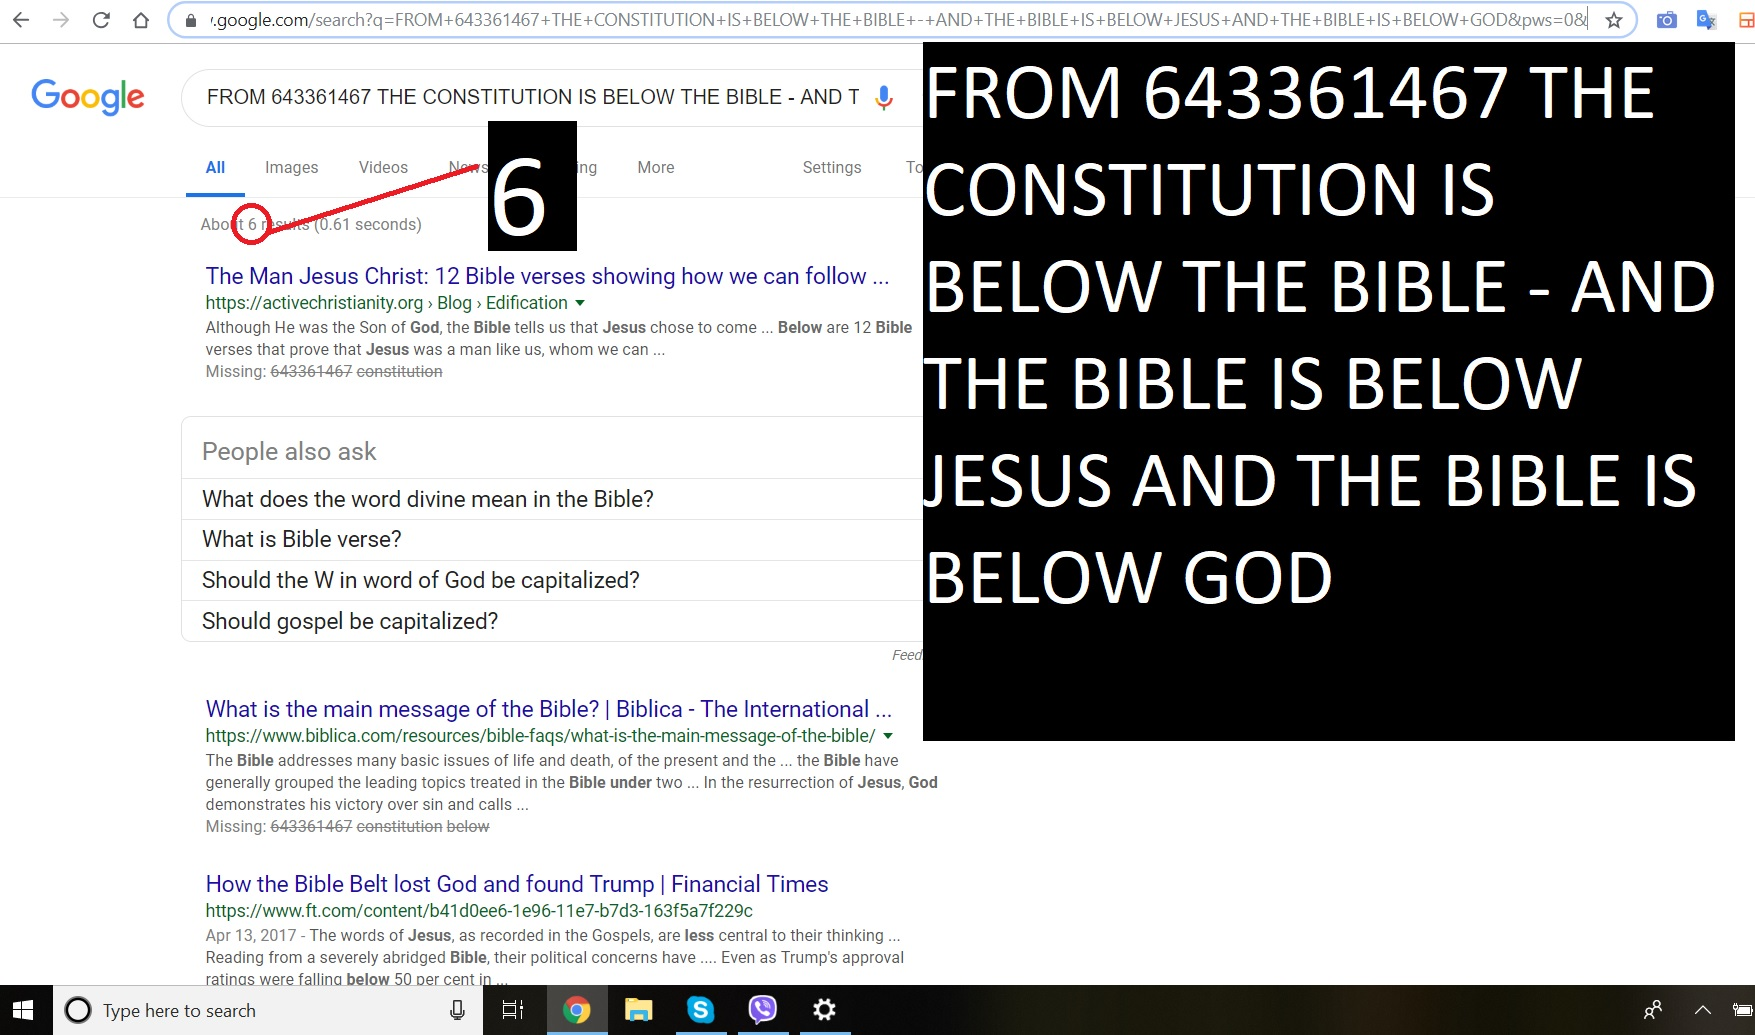 FROM OLGA AND AJAY - THE BIBLE THE CONSTITUTION - JESUS AND GOD